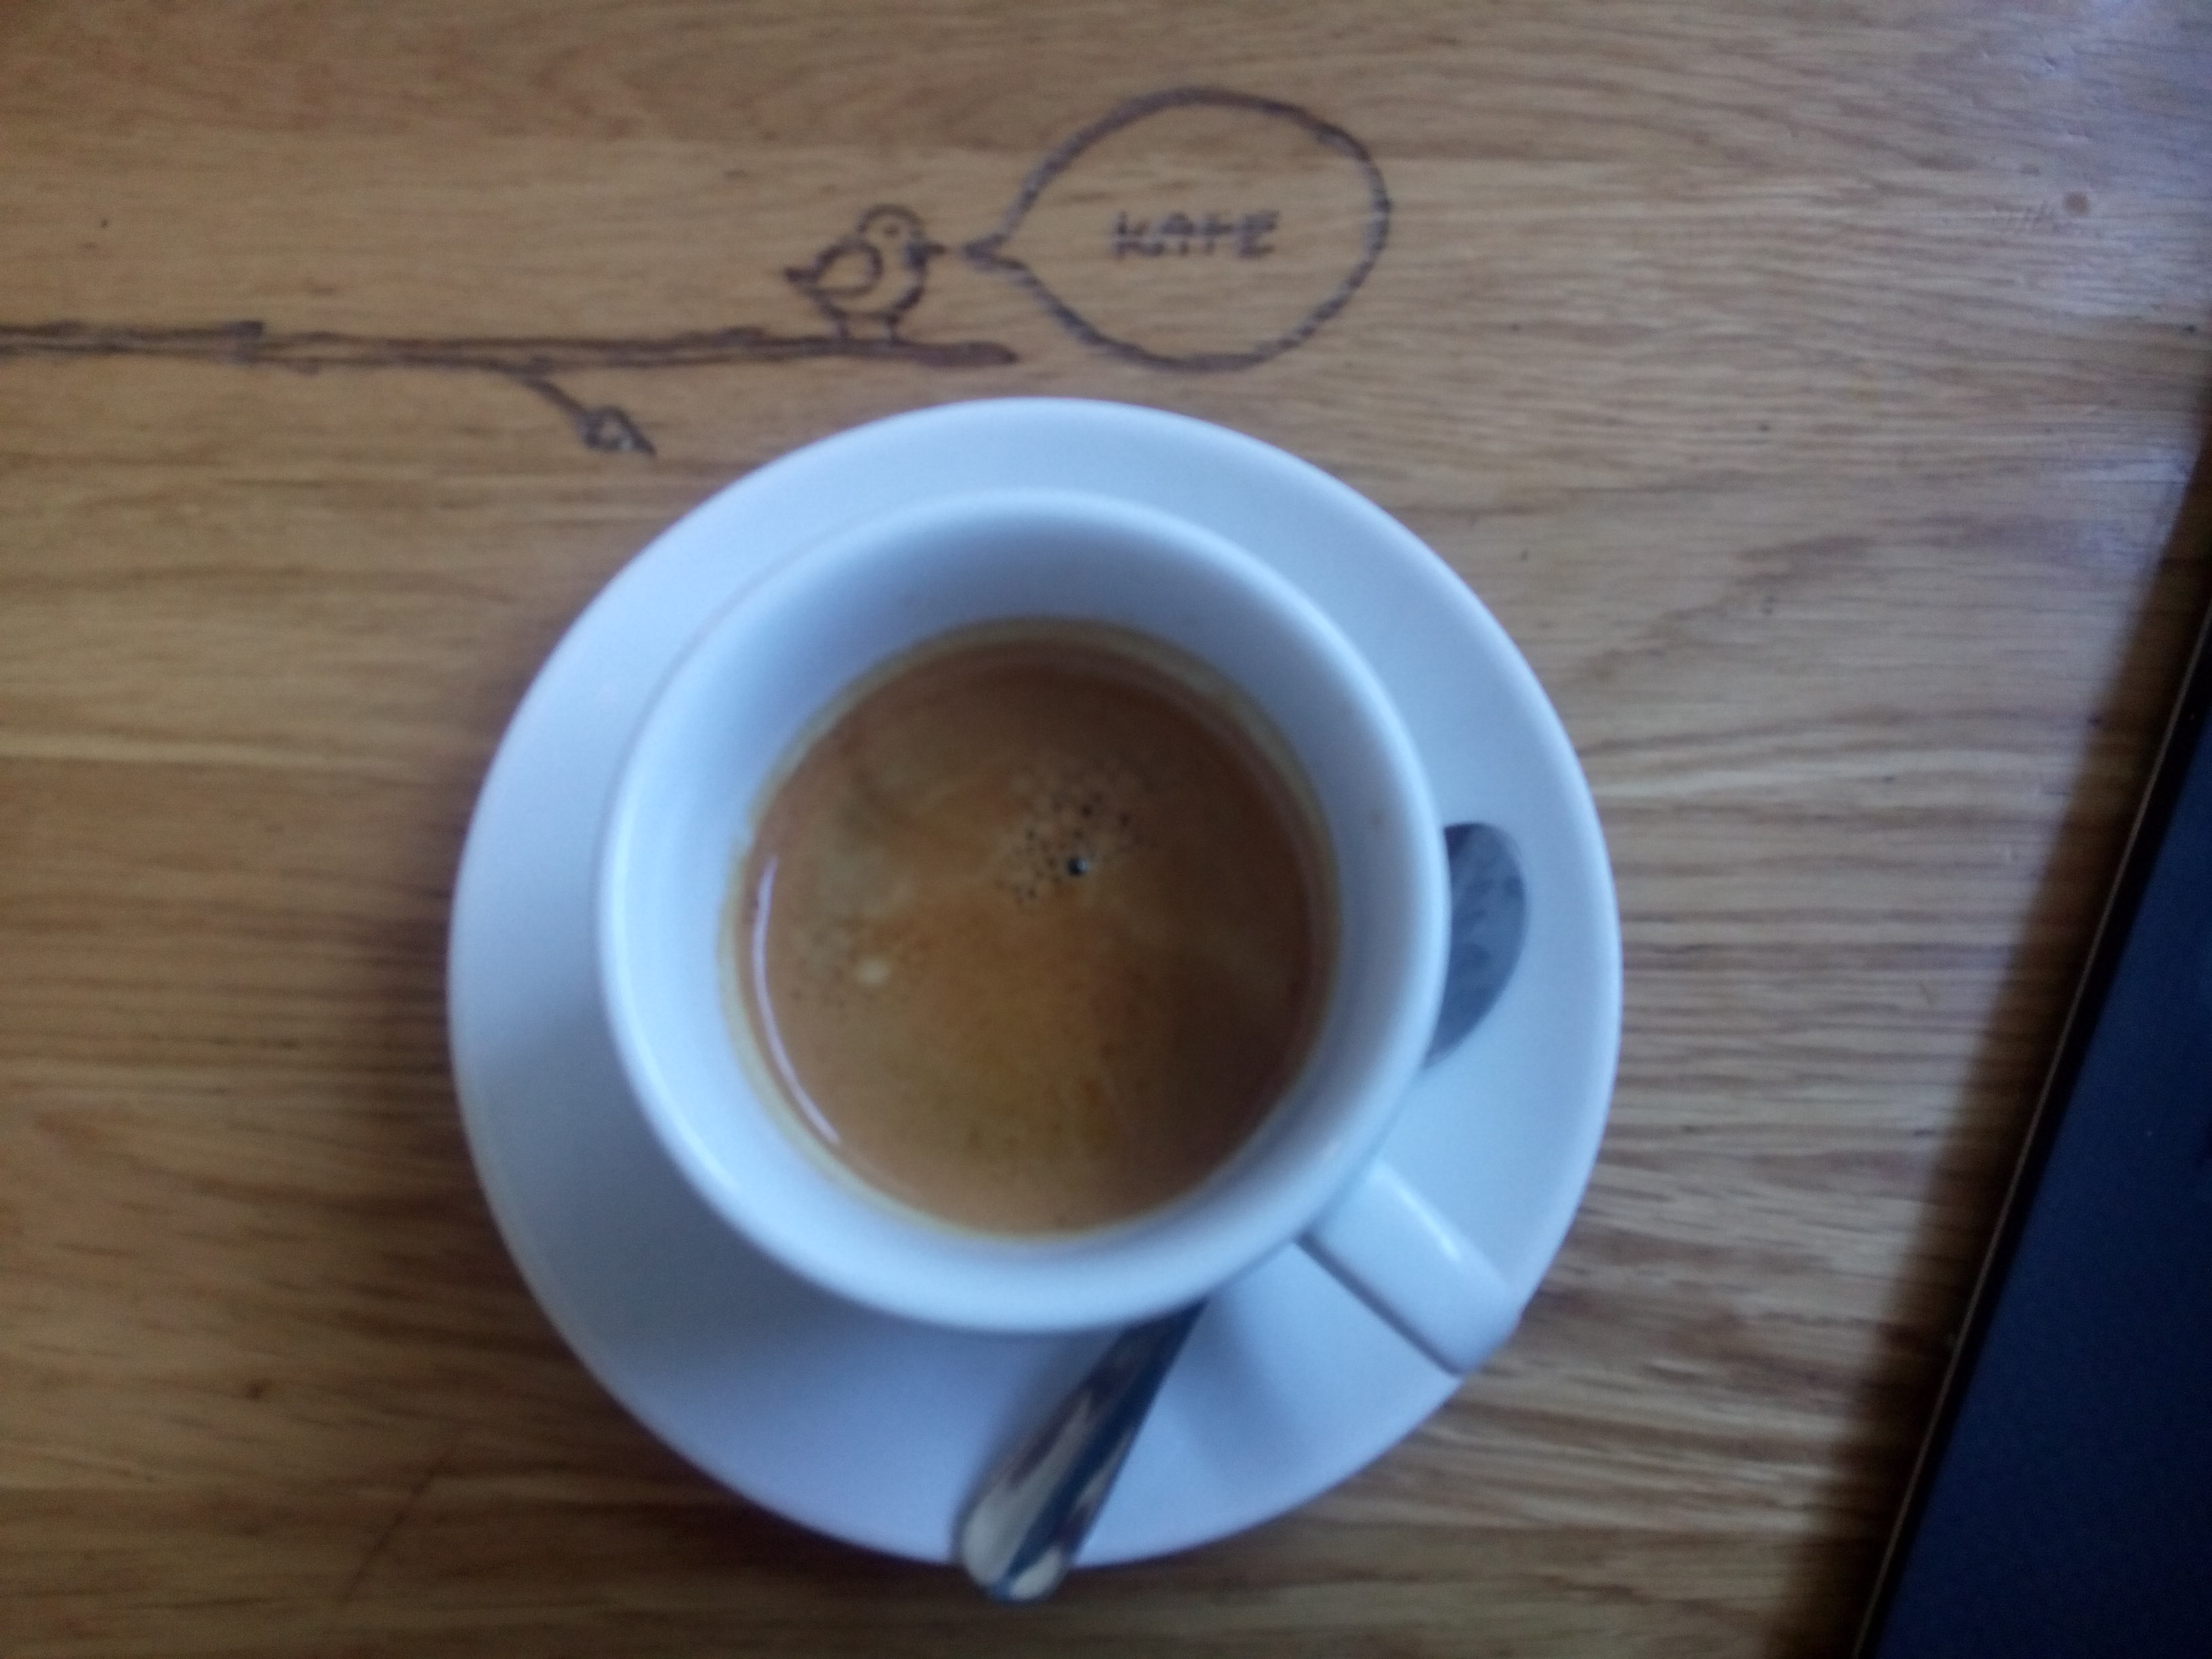 An espresso cup from the top, on a wooden table, with carved graffiti of a little bird on a branch saying 'kave'